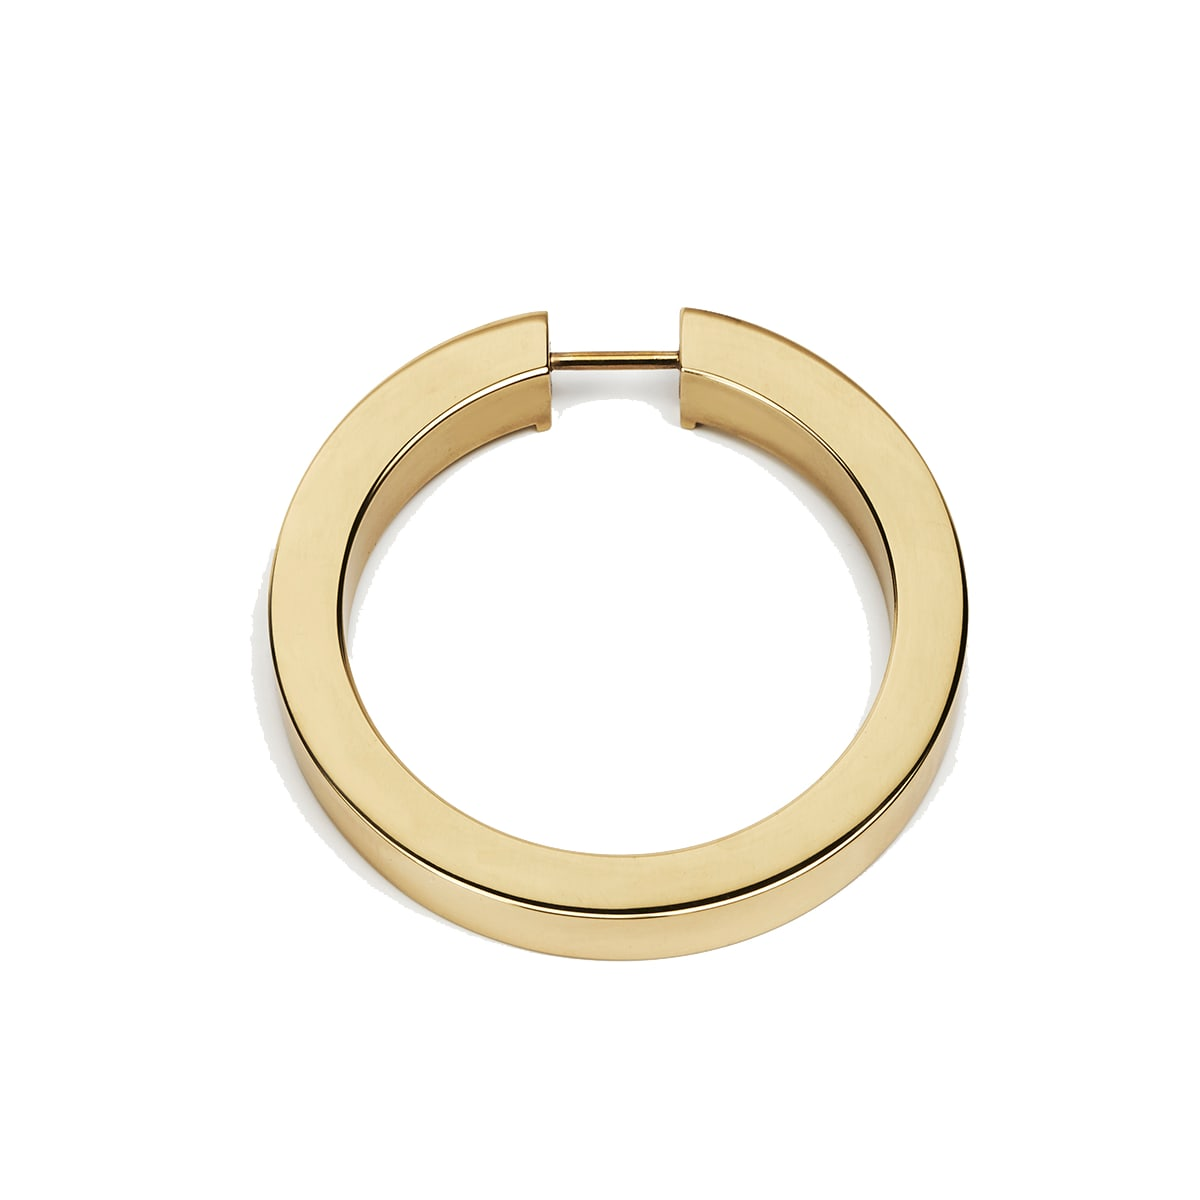 Alno 3 Inch Wide Round Cabinet Ring Pull - Less Mount